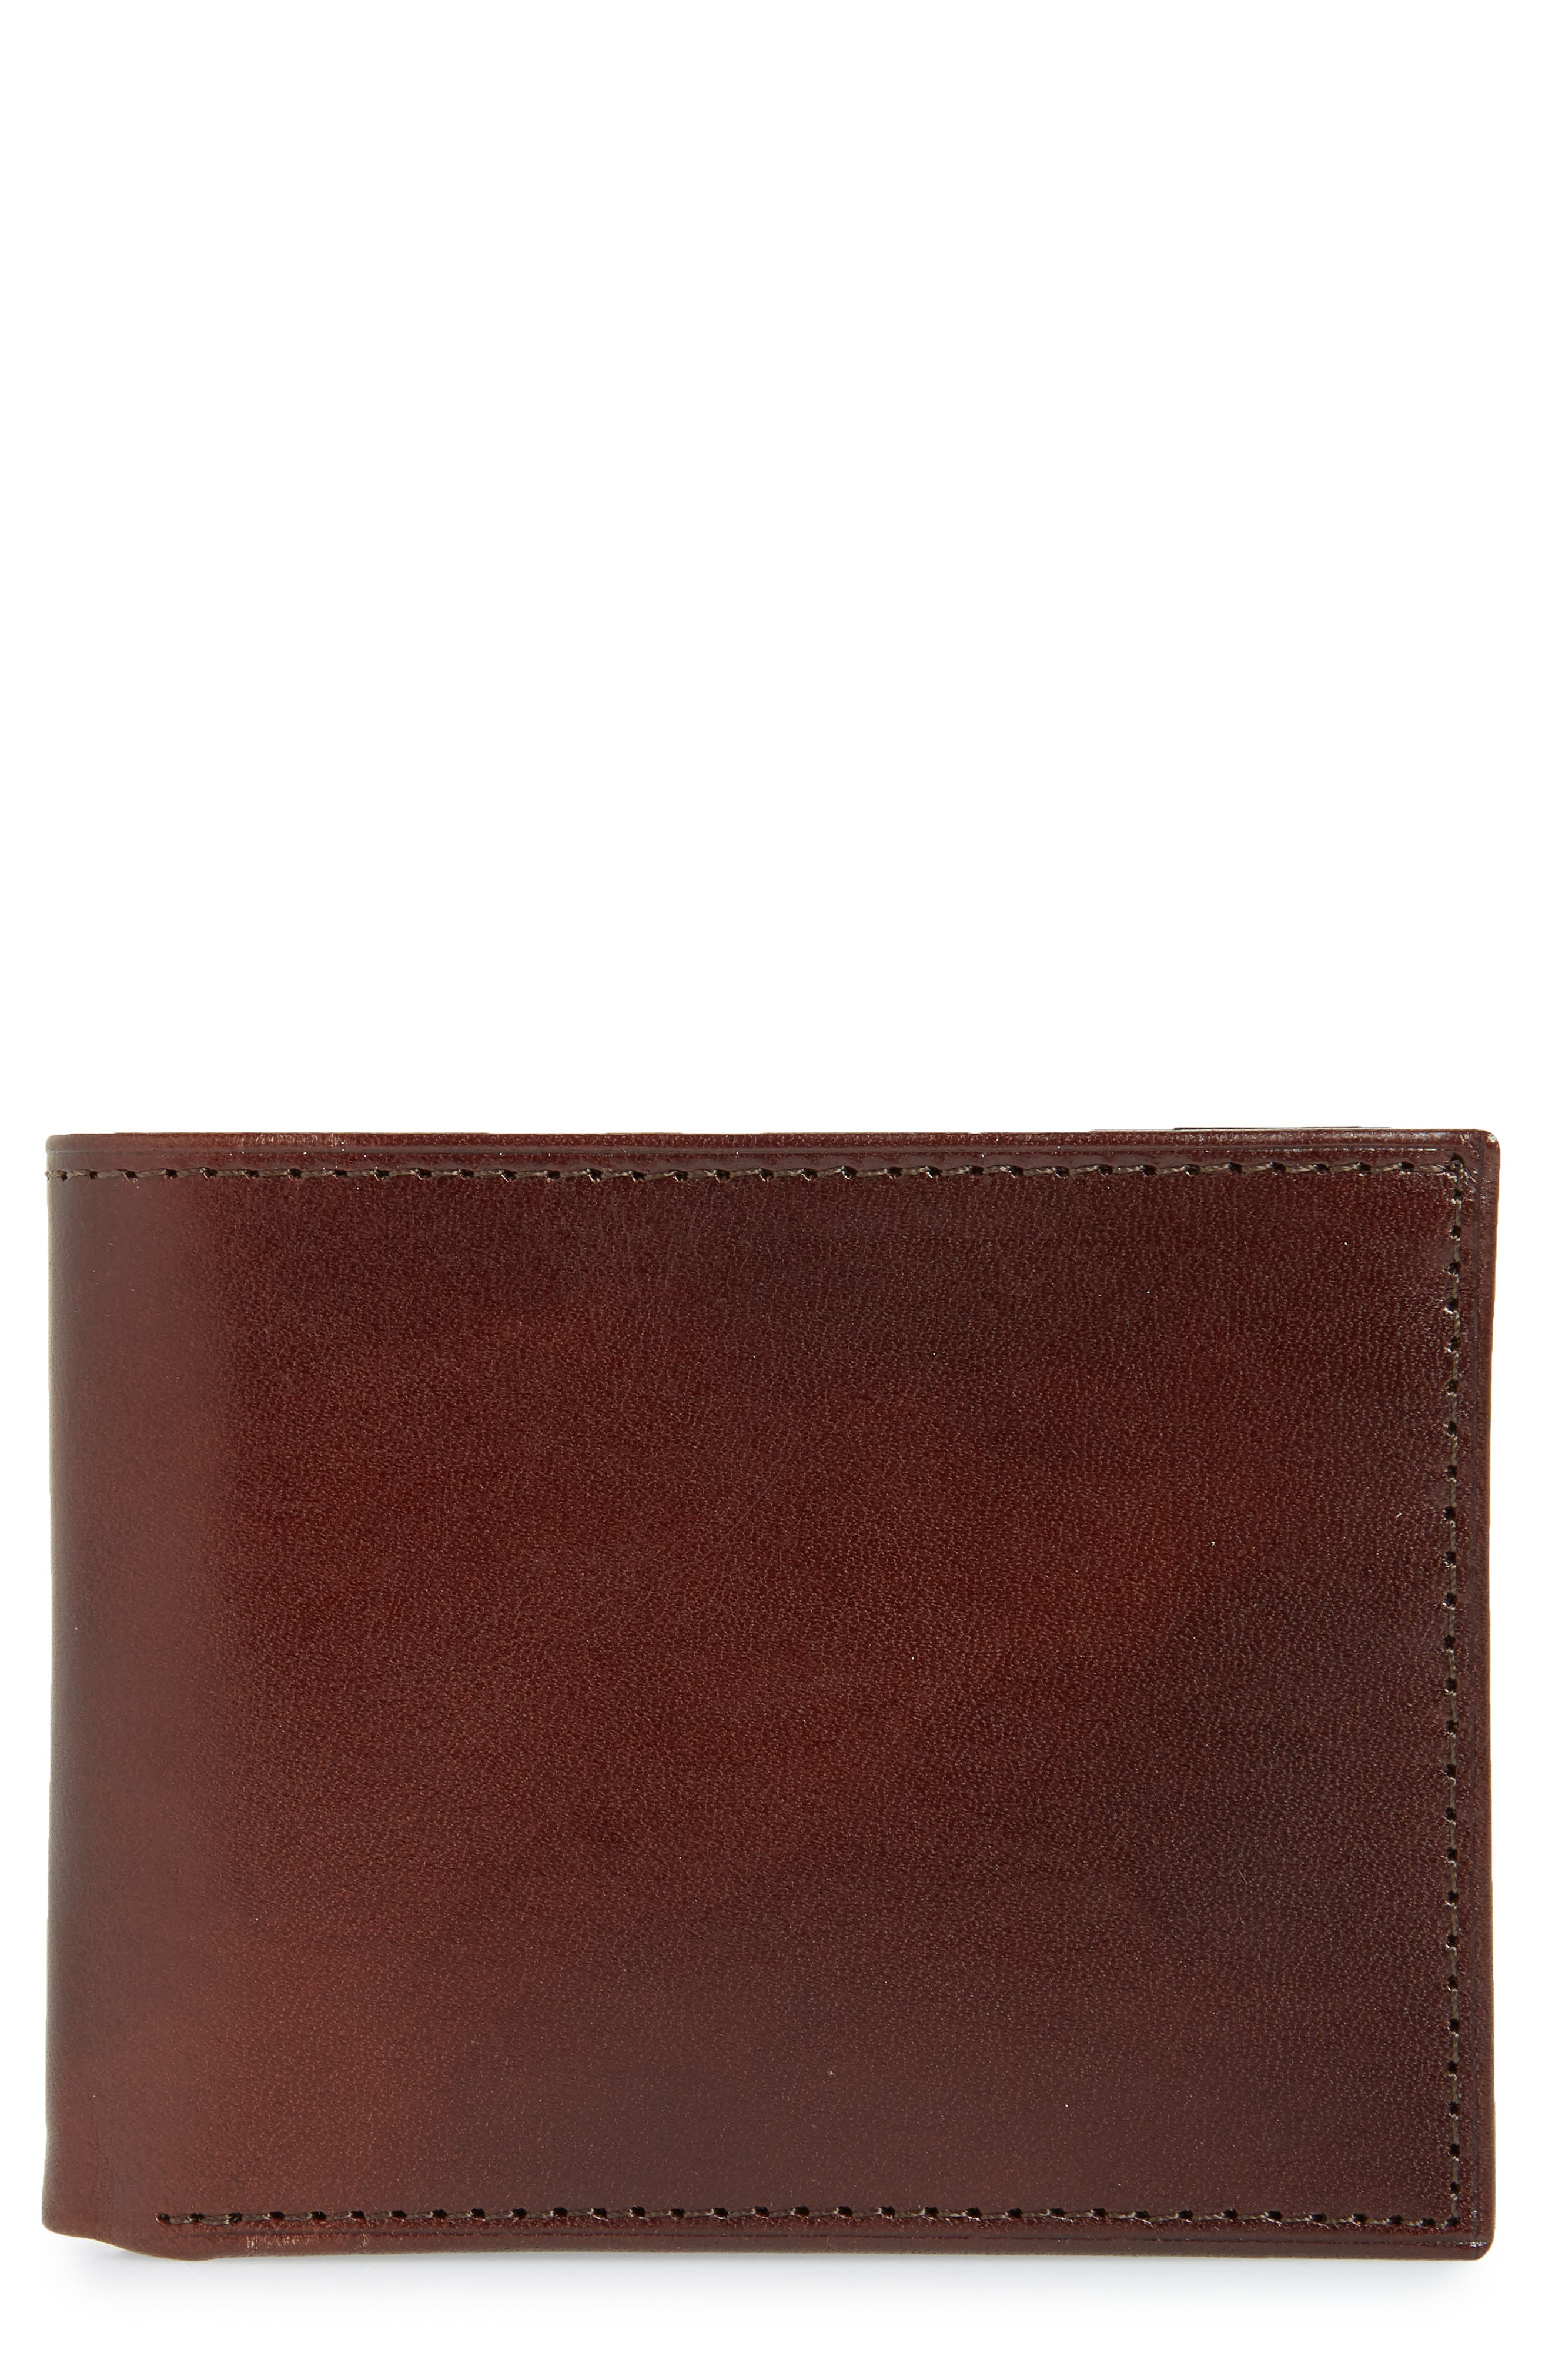 Slimfold Leather Wallet,                         Main,                         color, 200